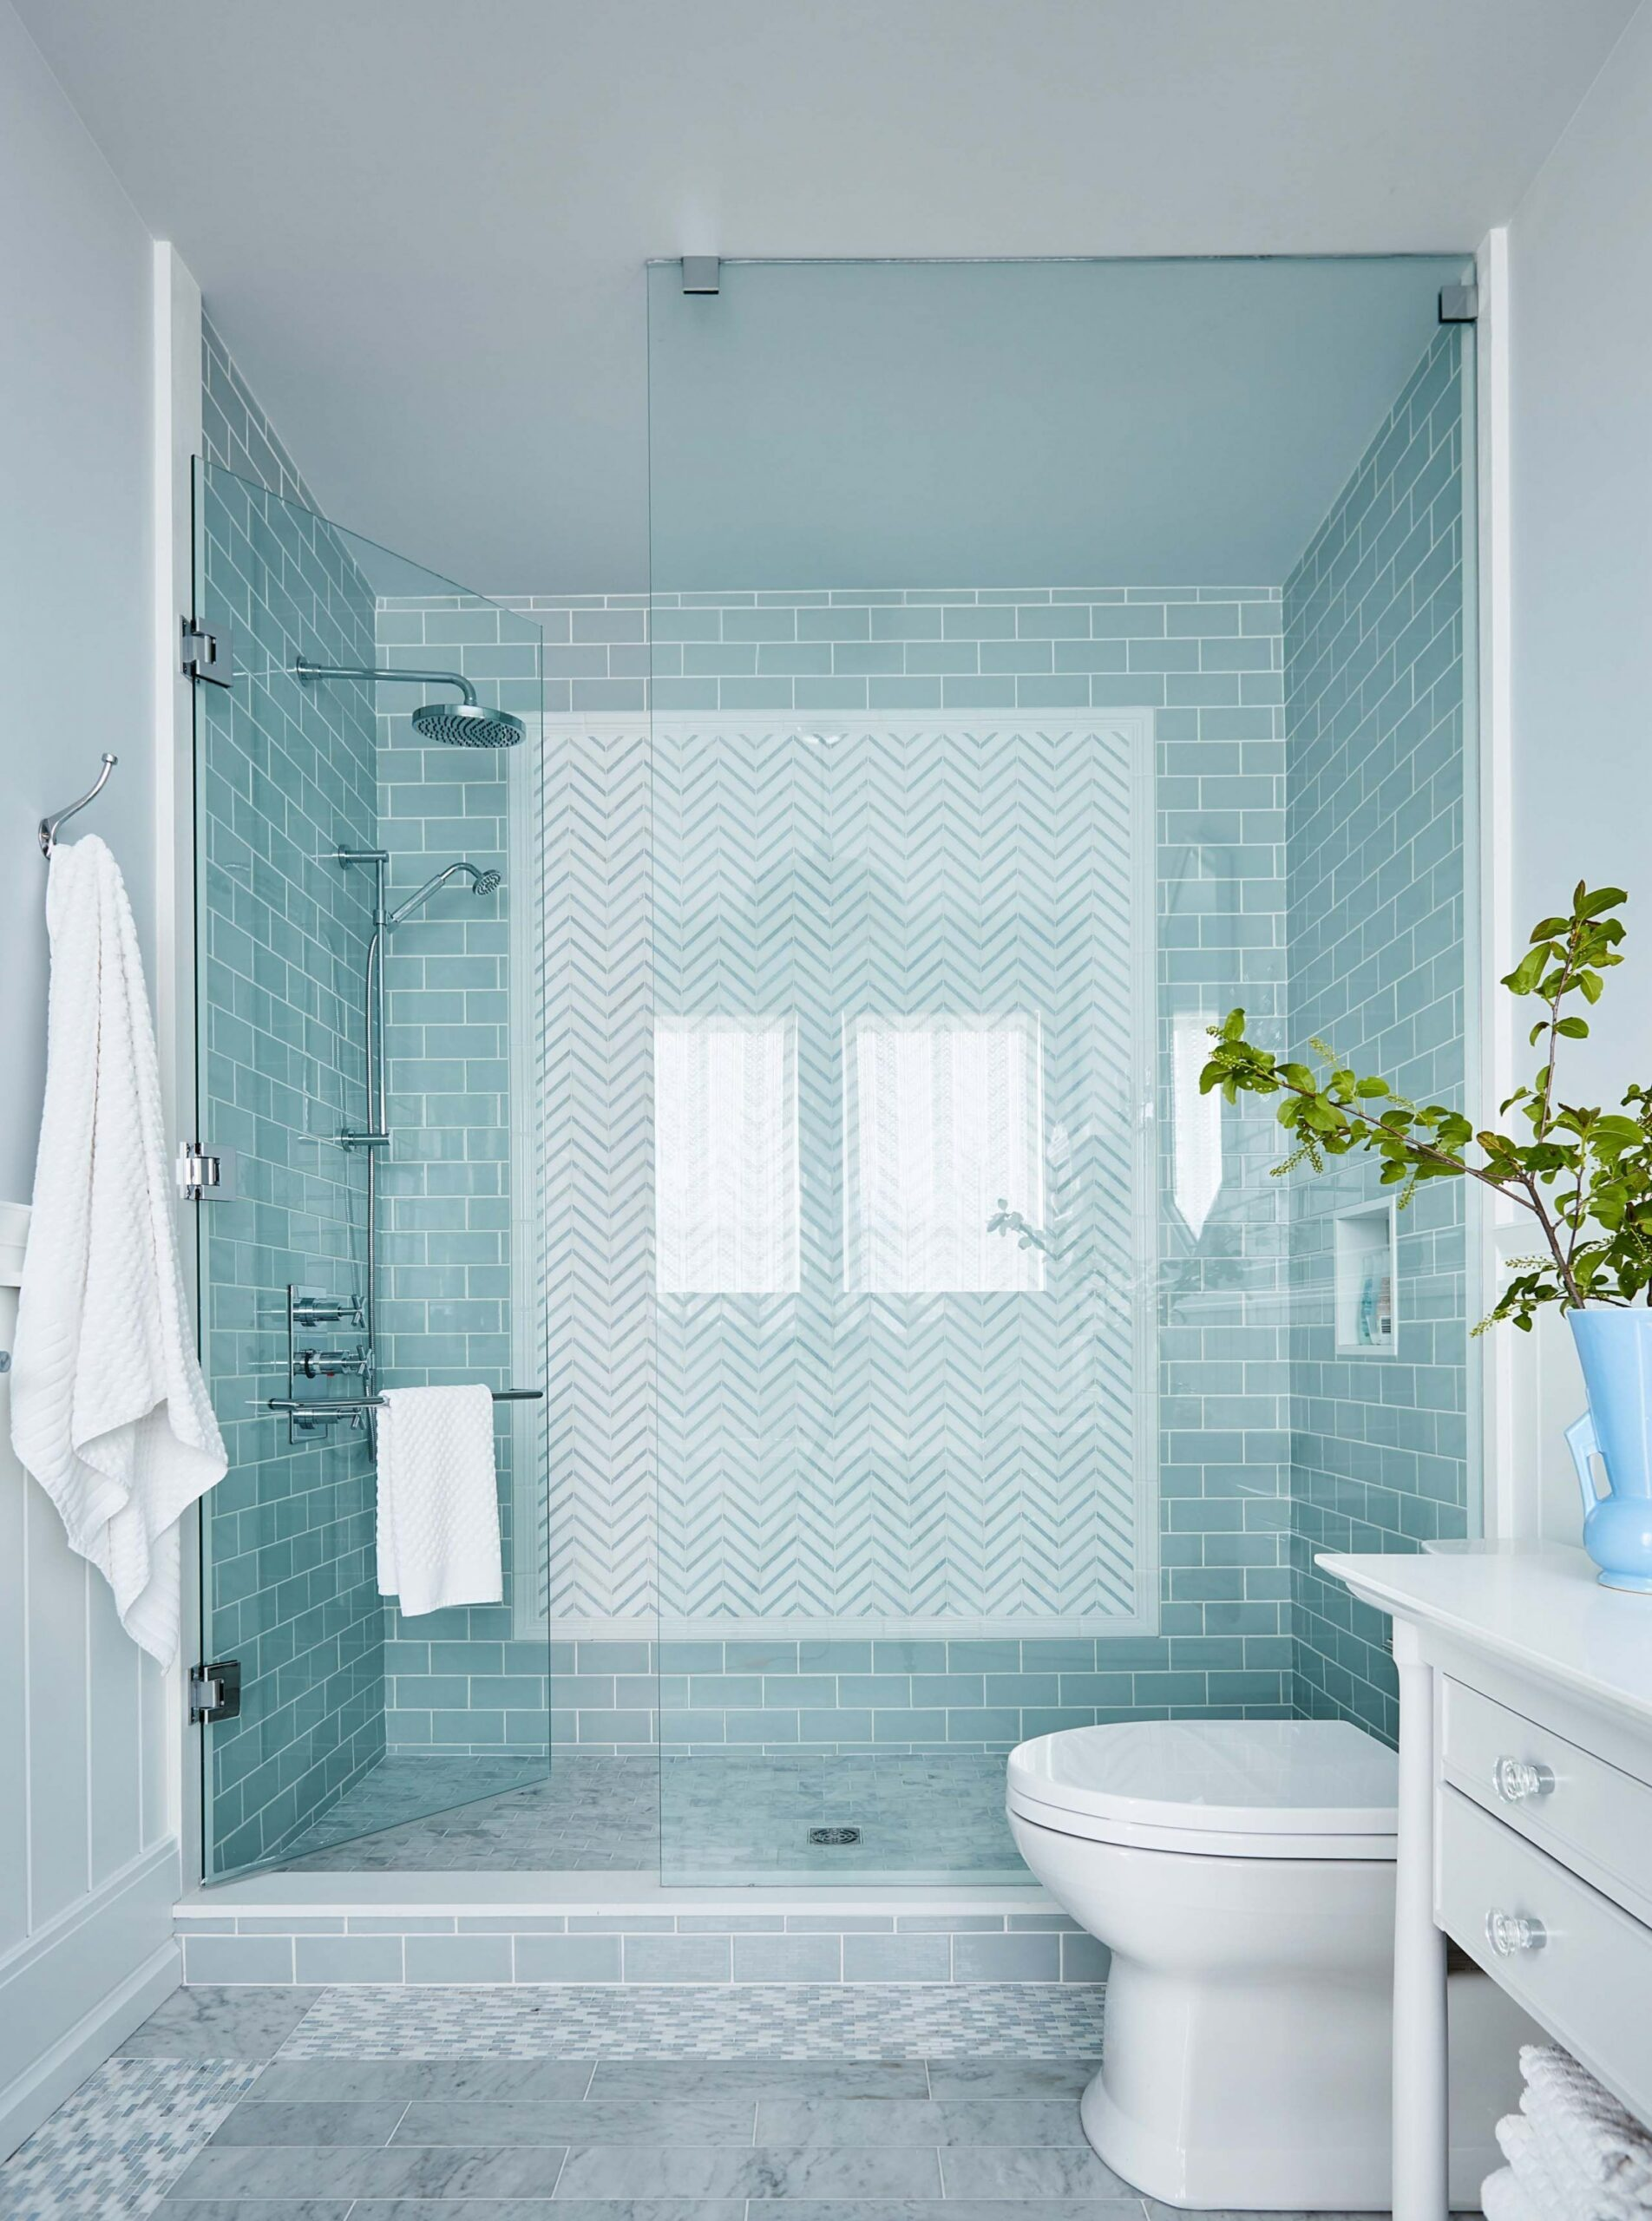 small bathroom design ideas home ideas shower tile ideas astonishing best small of small bathroom design ideas 1 scaled